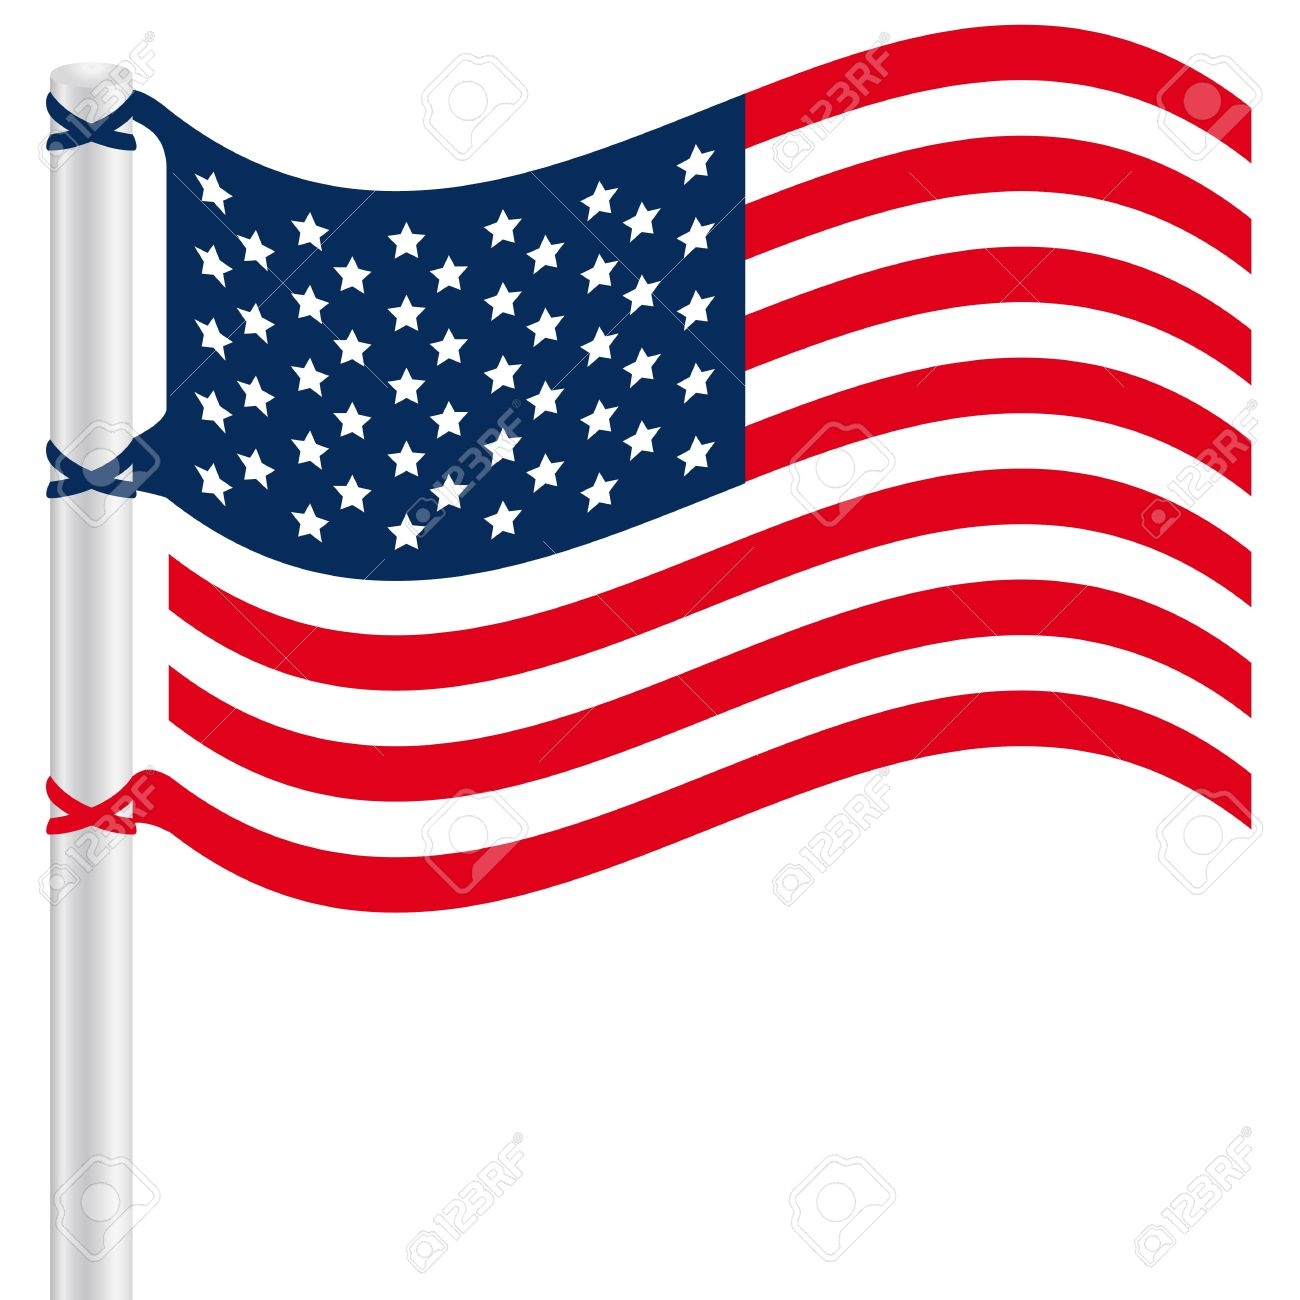 United states mexico flag clipart.